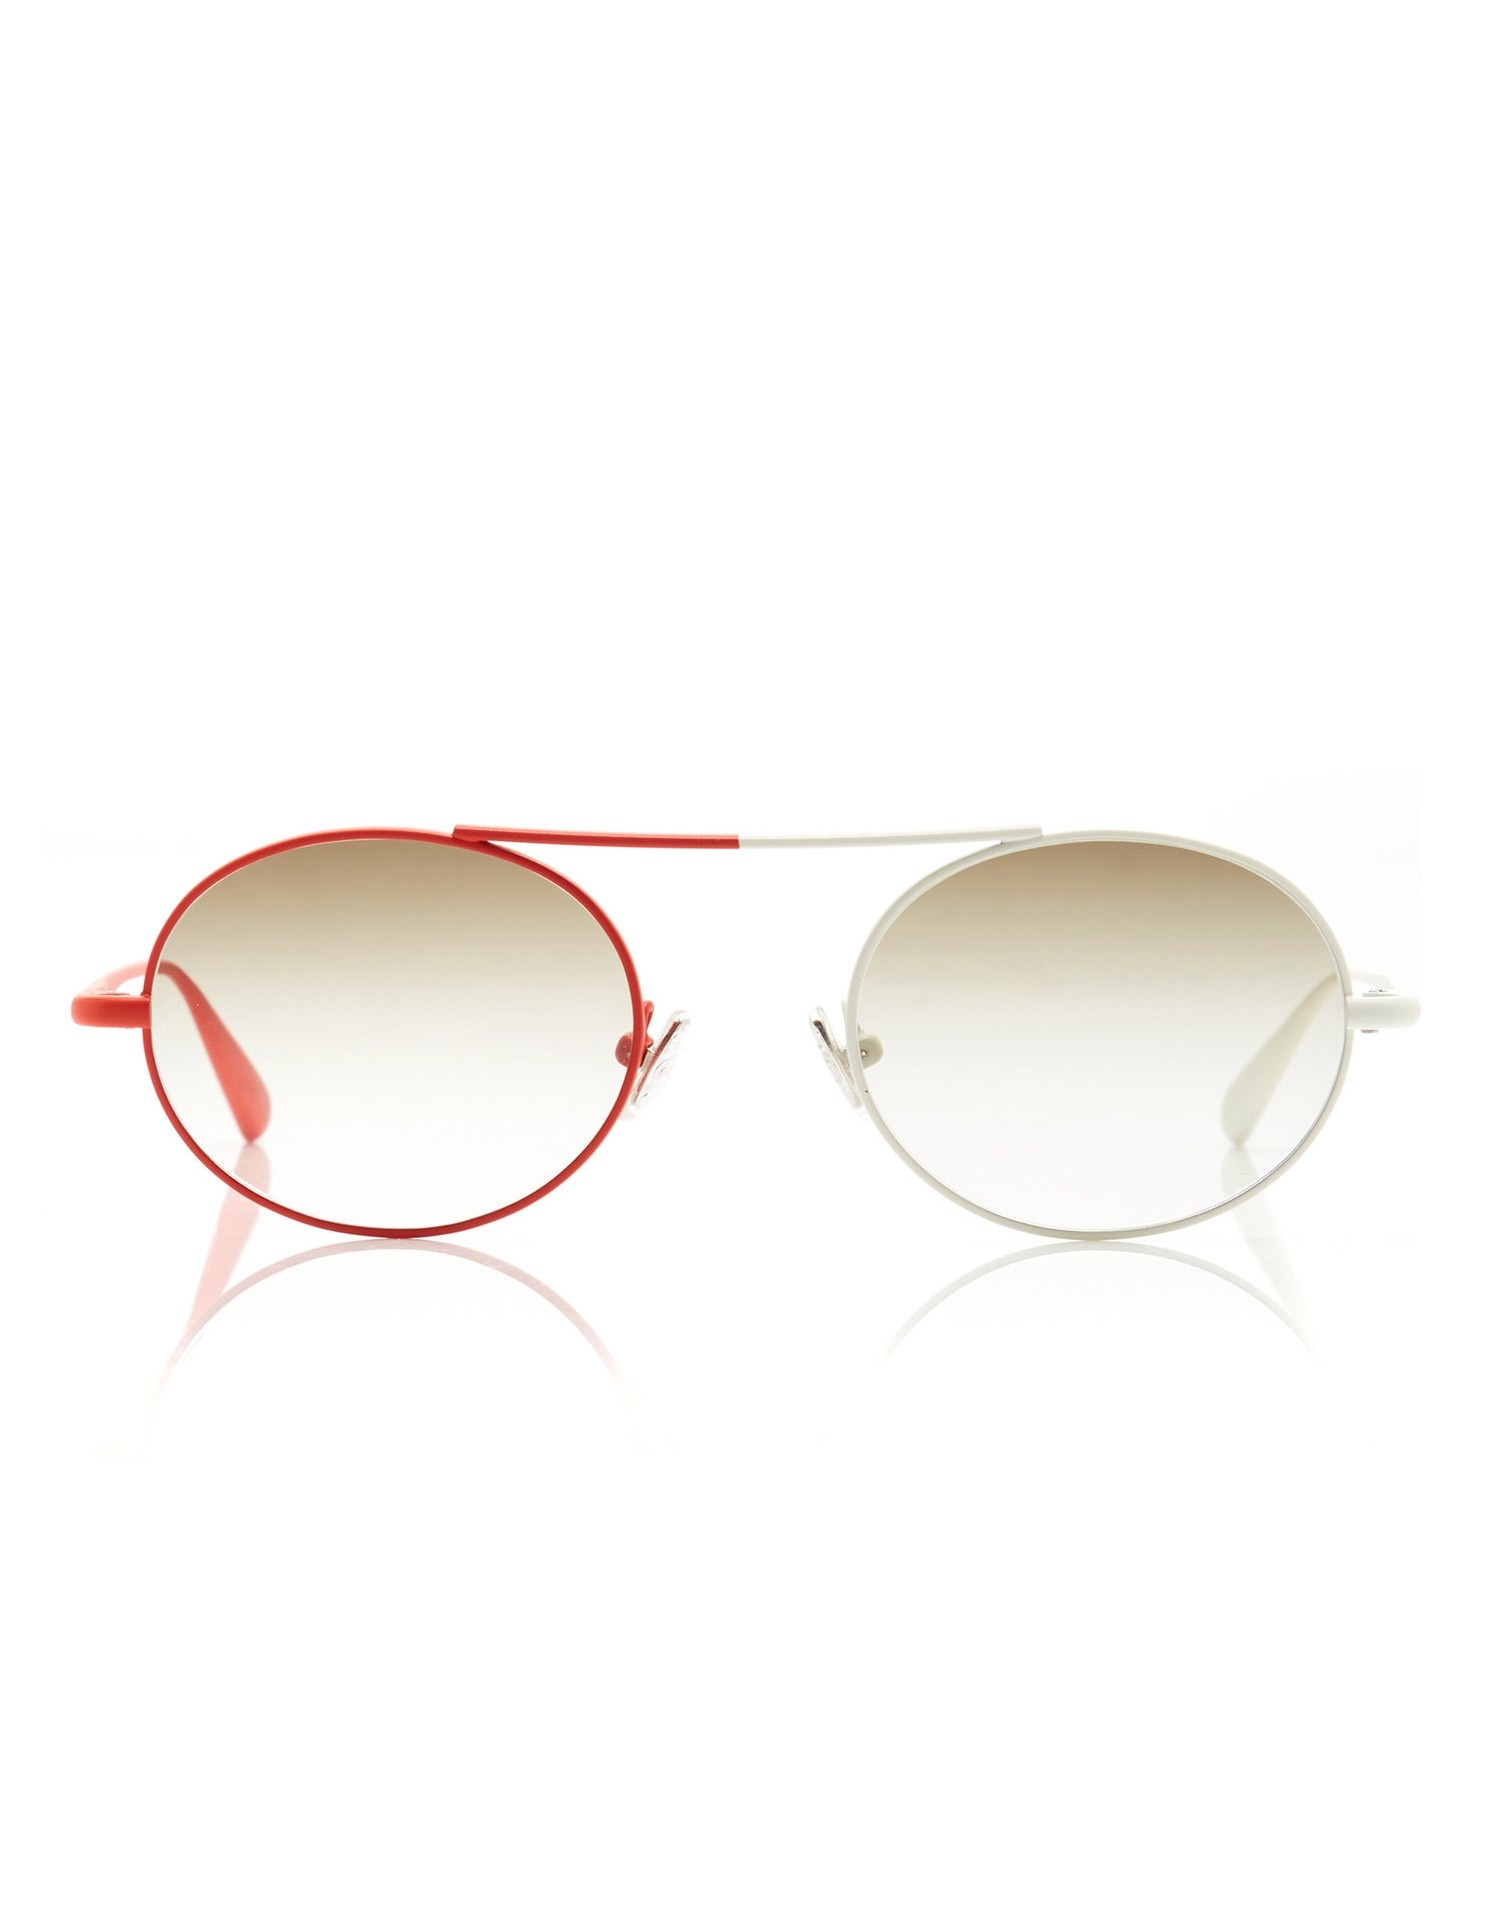 b8a8d4f2a0 Monse Nina Sunglasses with Dual Colored Rims in Red and Ivory ...